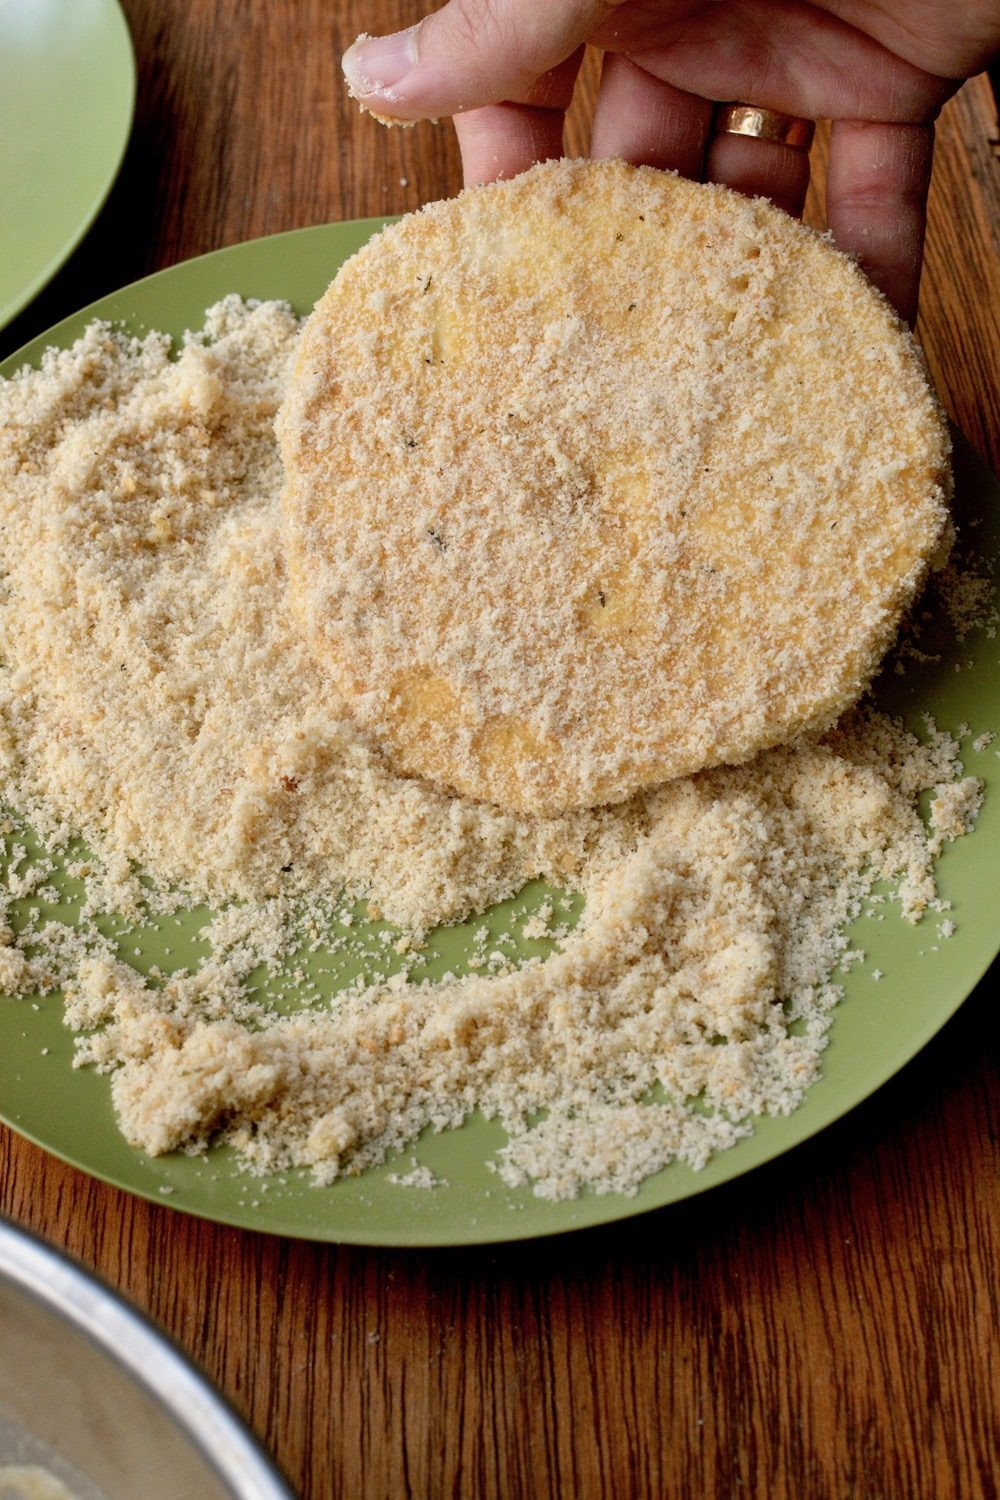 Coating the celeriac slice in fine breadcrumbs